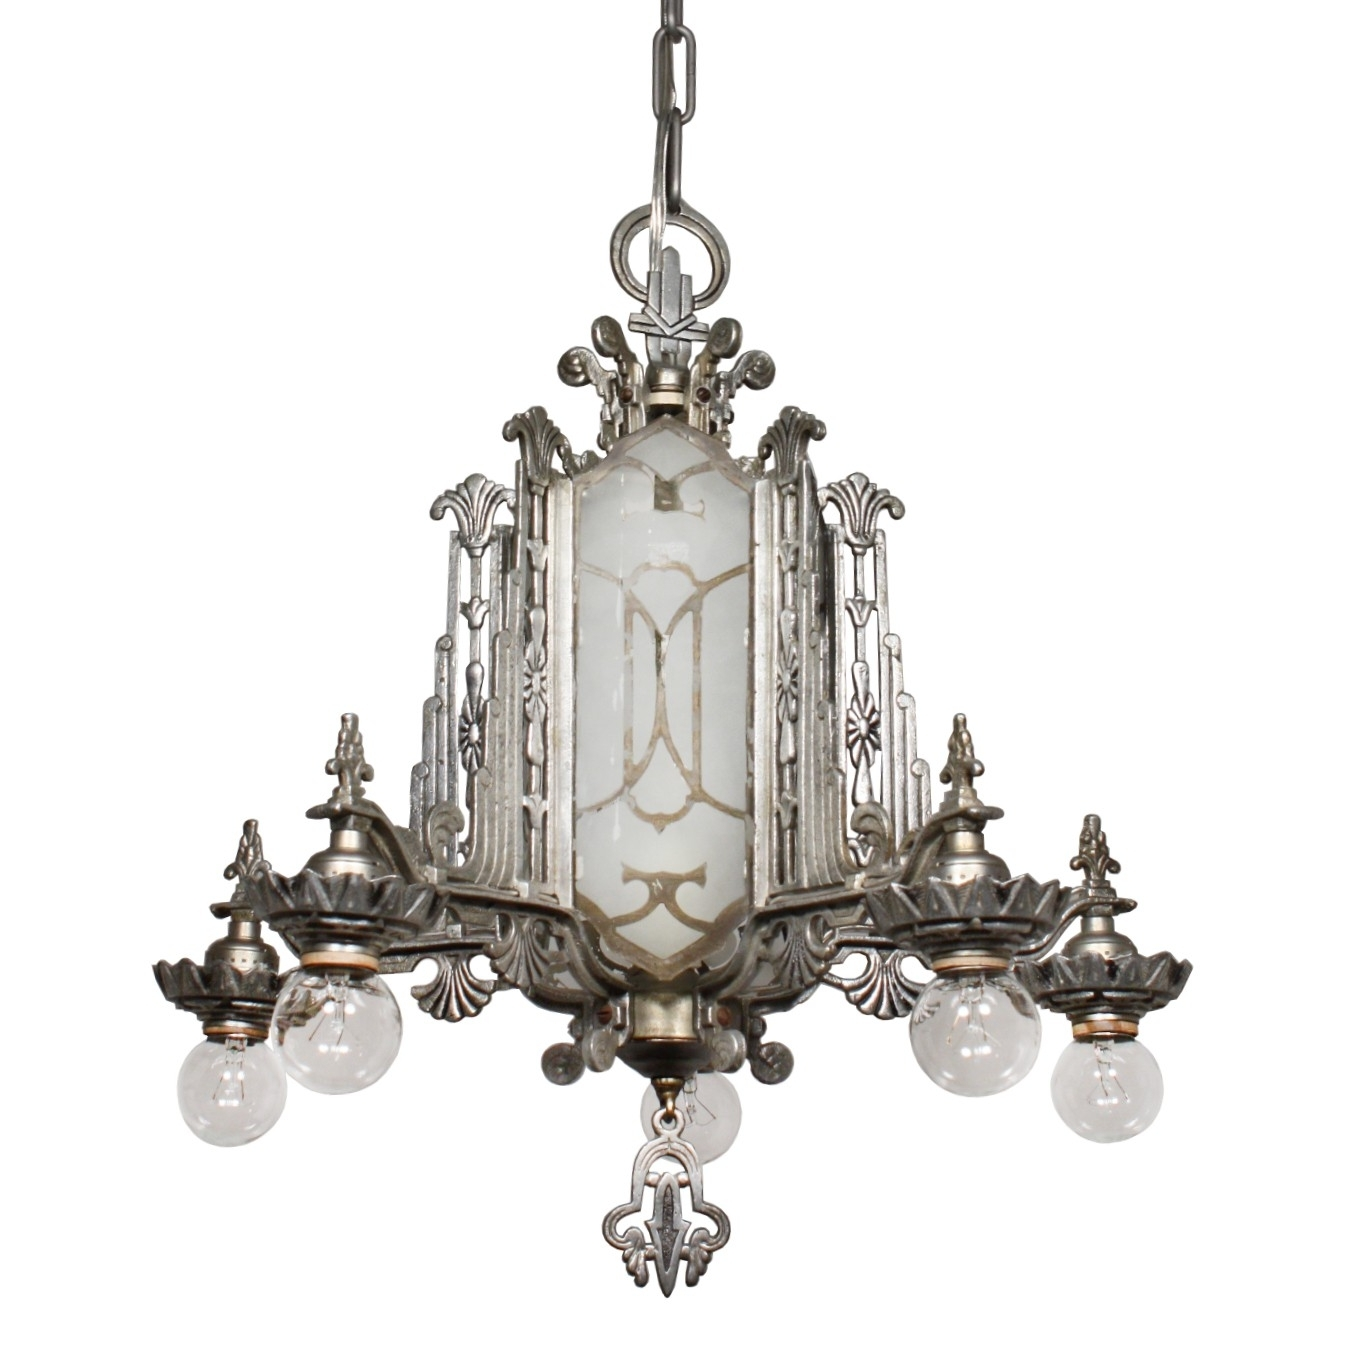 Magnificent Antique Art Deco Chandelier, Mirrored And Etched Glass Regarding Newest Mirrored Chandelier (View 9 of 20)